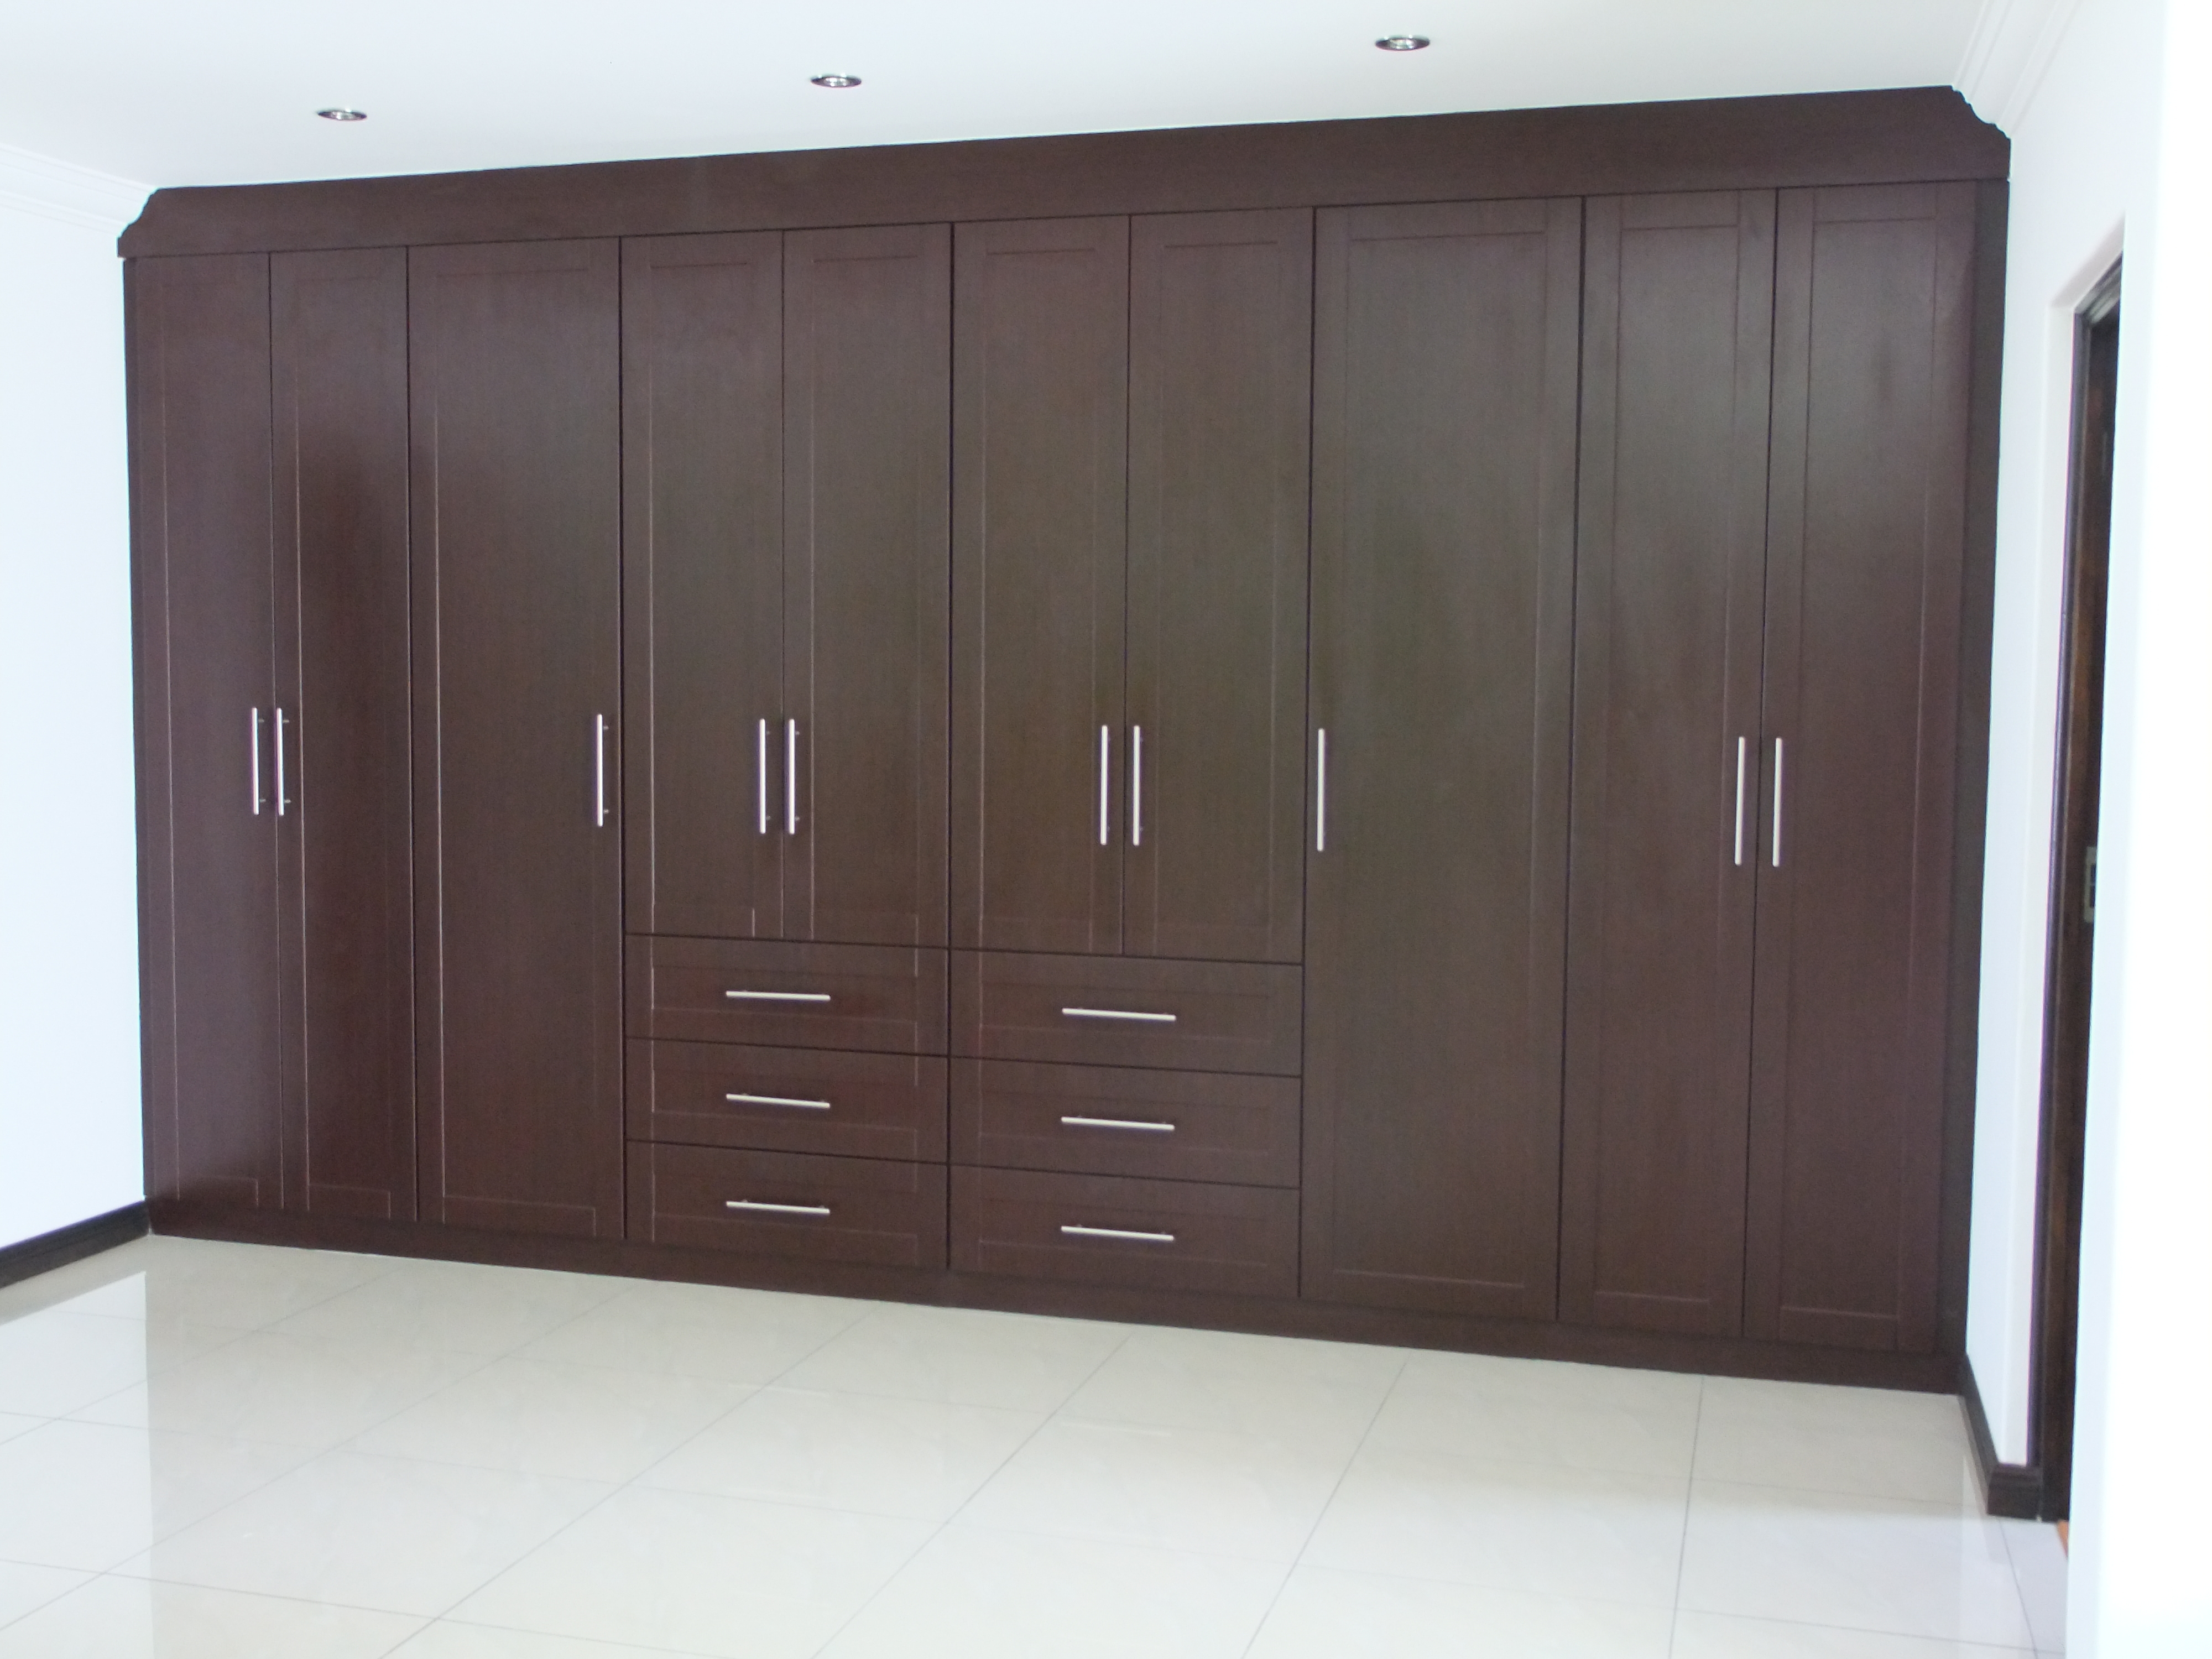 Popular Built In Cupboards And Units – Atlas Boards And Kitchens For Built In Cupboards (View 13 of 15)